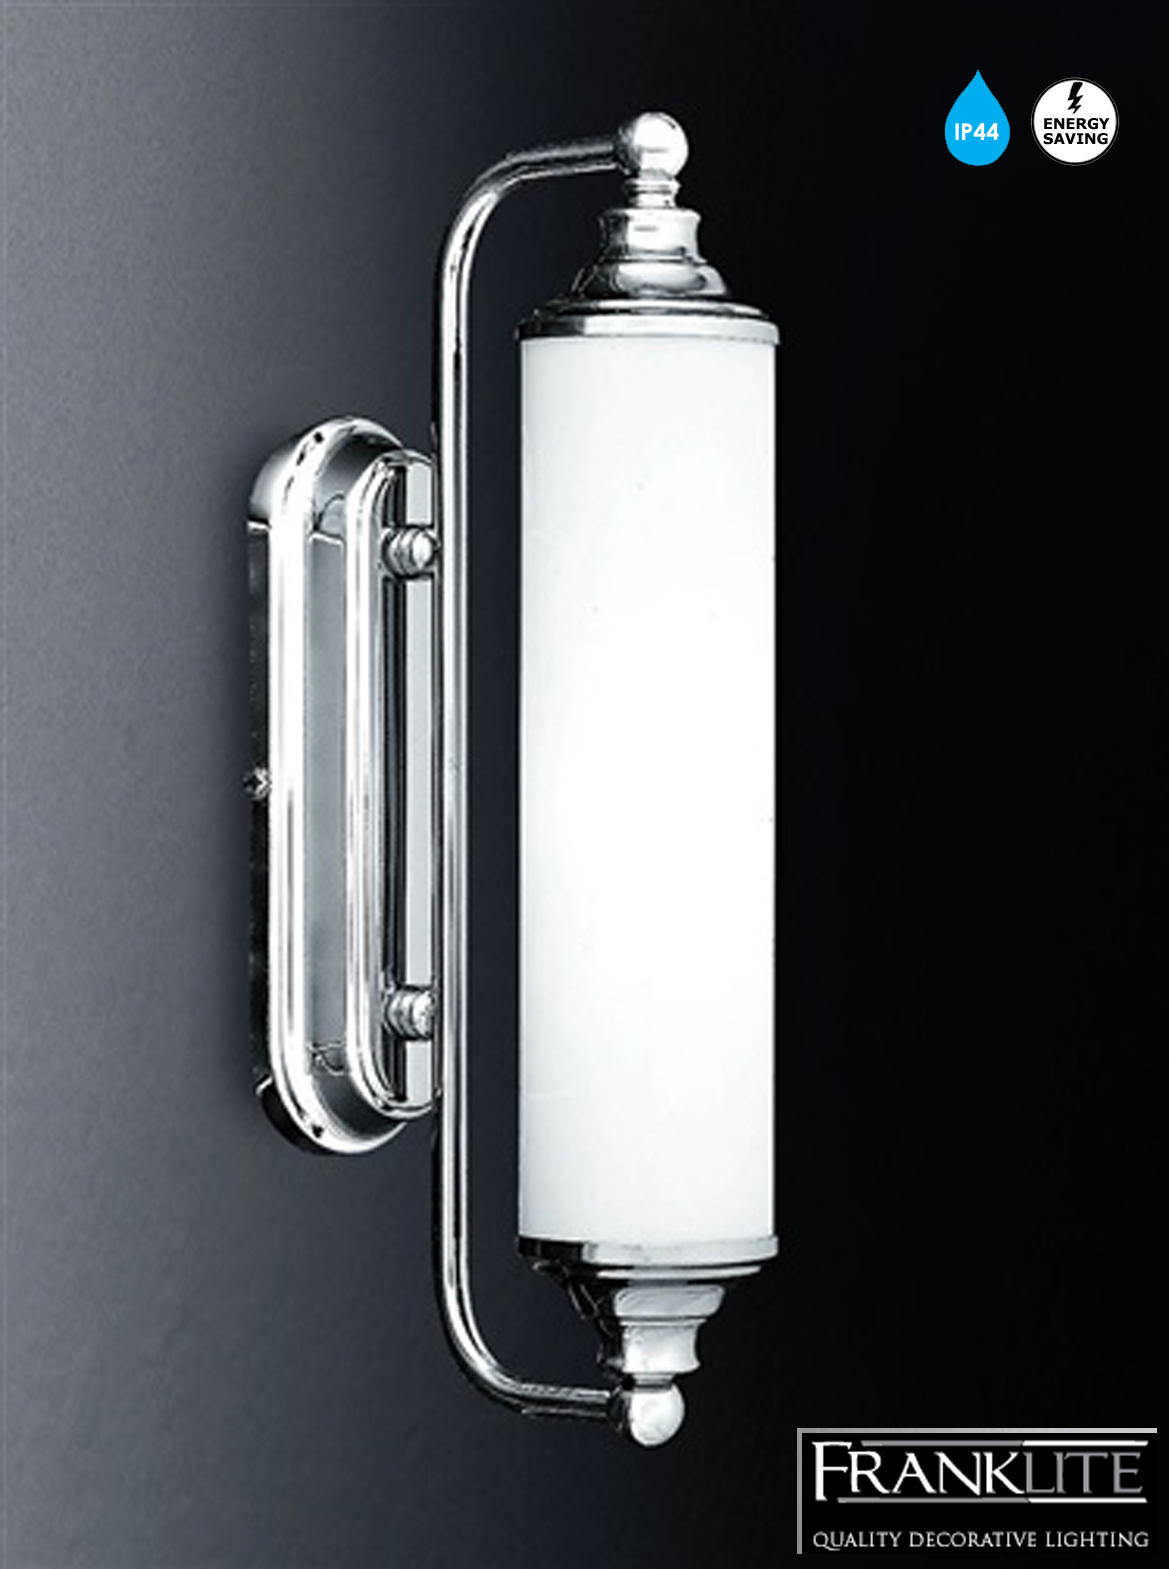 Franklite Low Energy Glass Chrome Ip44 Bathroom Single Mirror Wall Light Wb157el 363 From